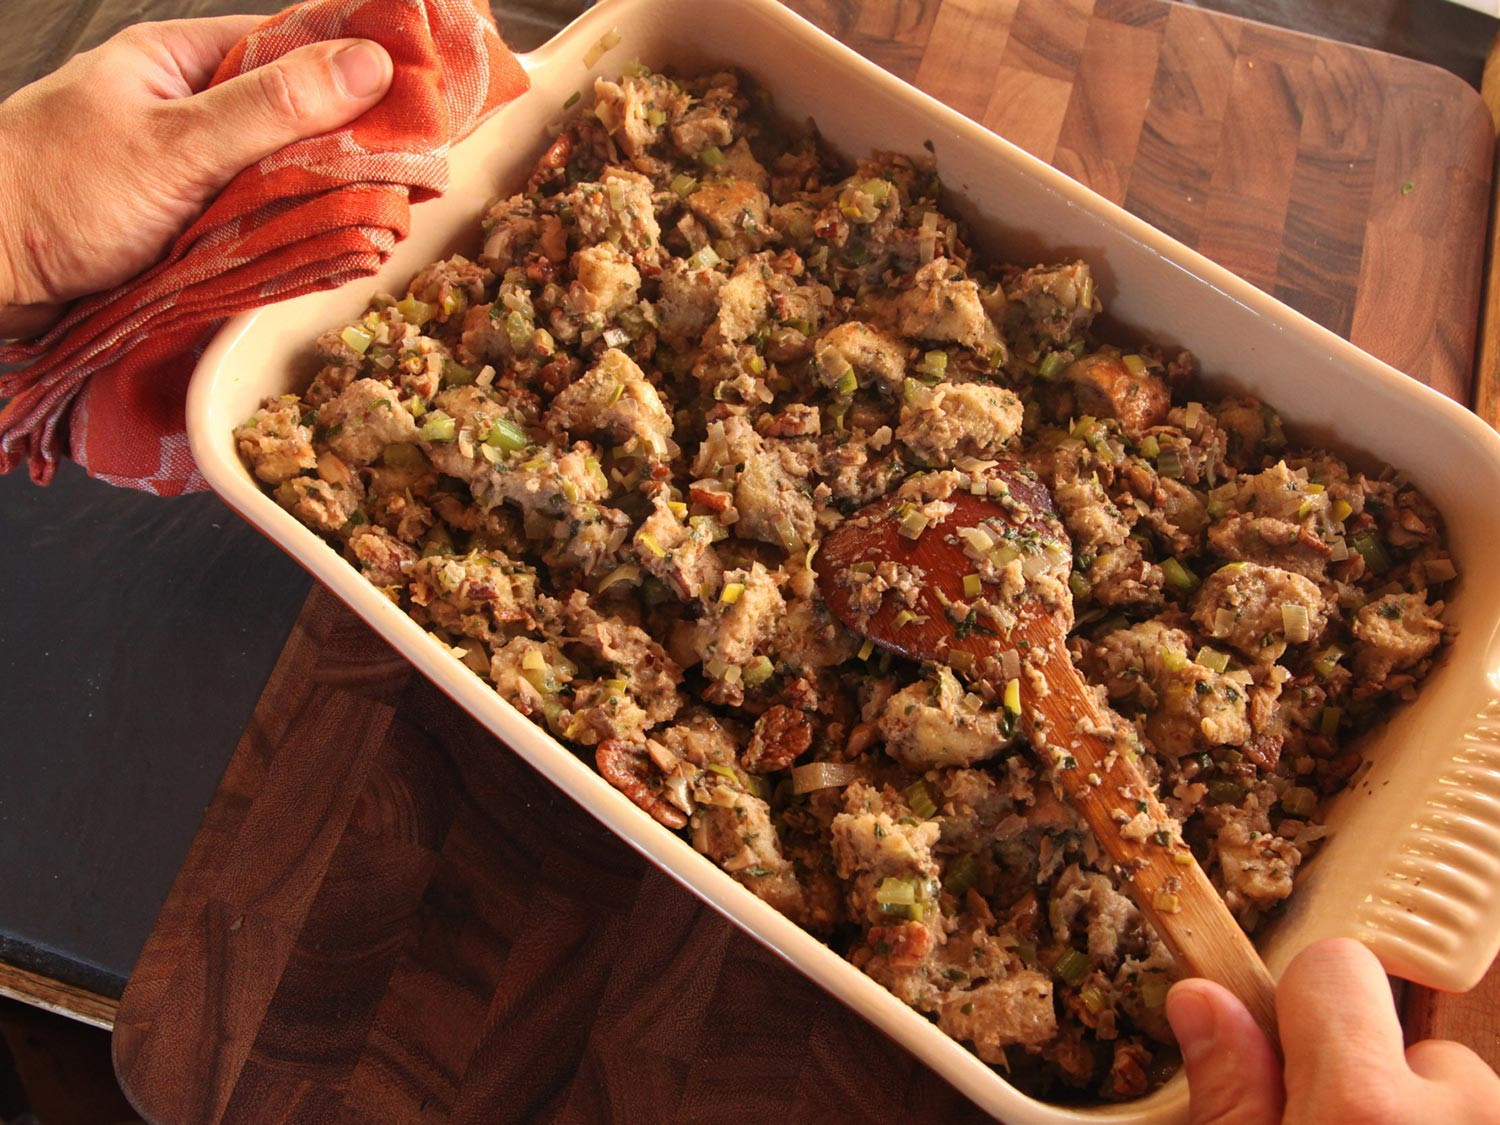 Vegan Stuffing Recipes For Thanksgiving  The Food Lab How to Make Vegan Stuffing That Really Rocks